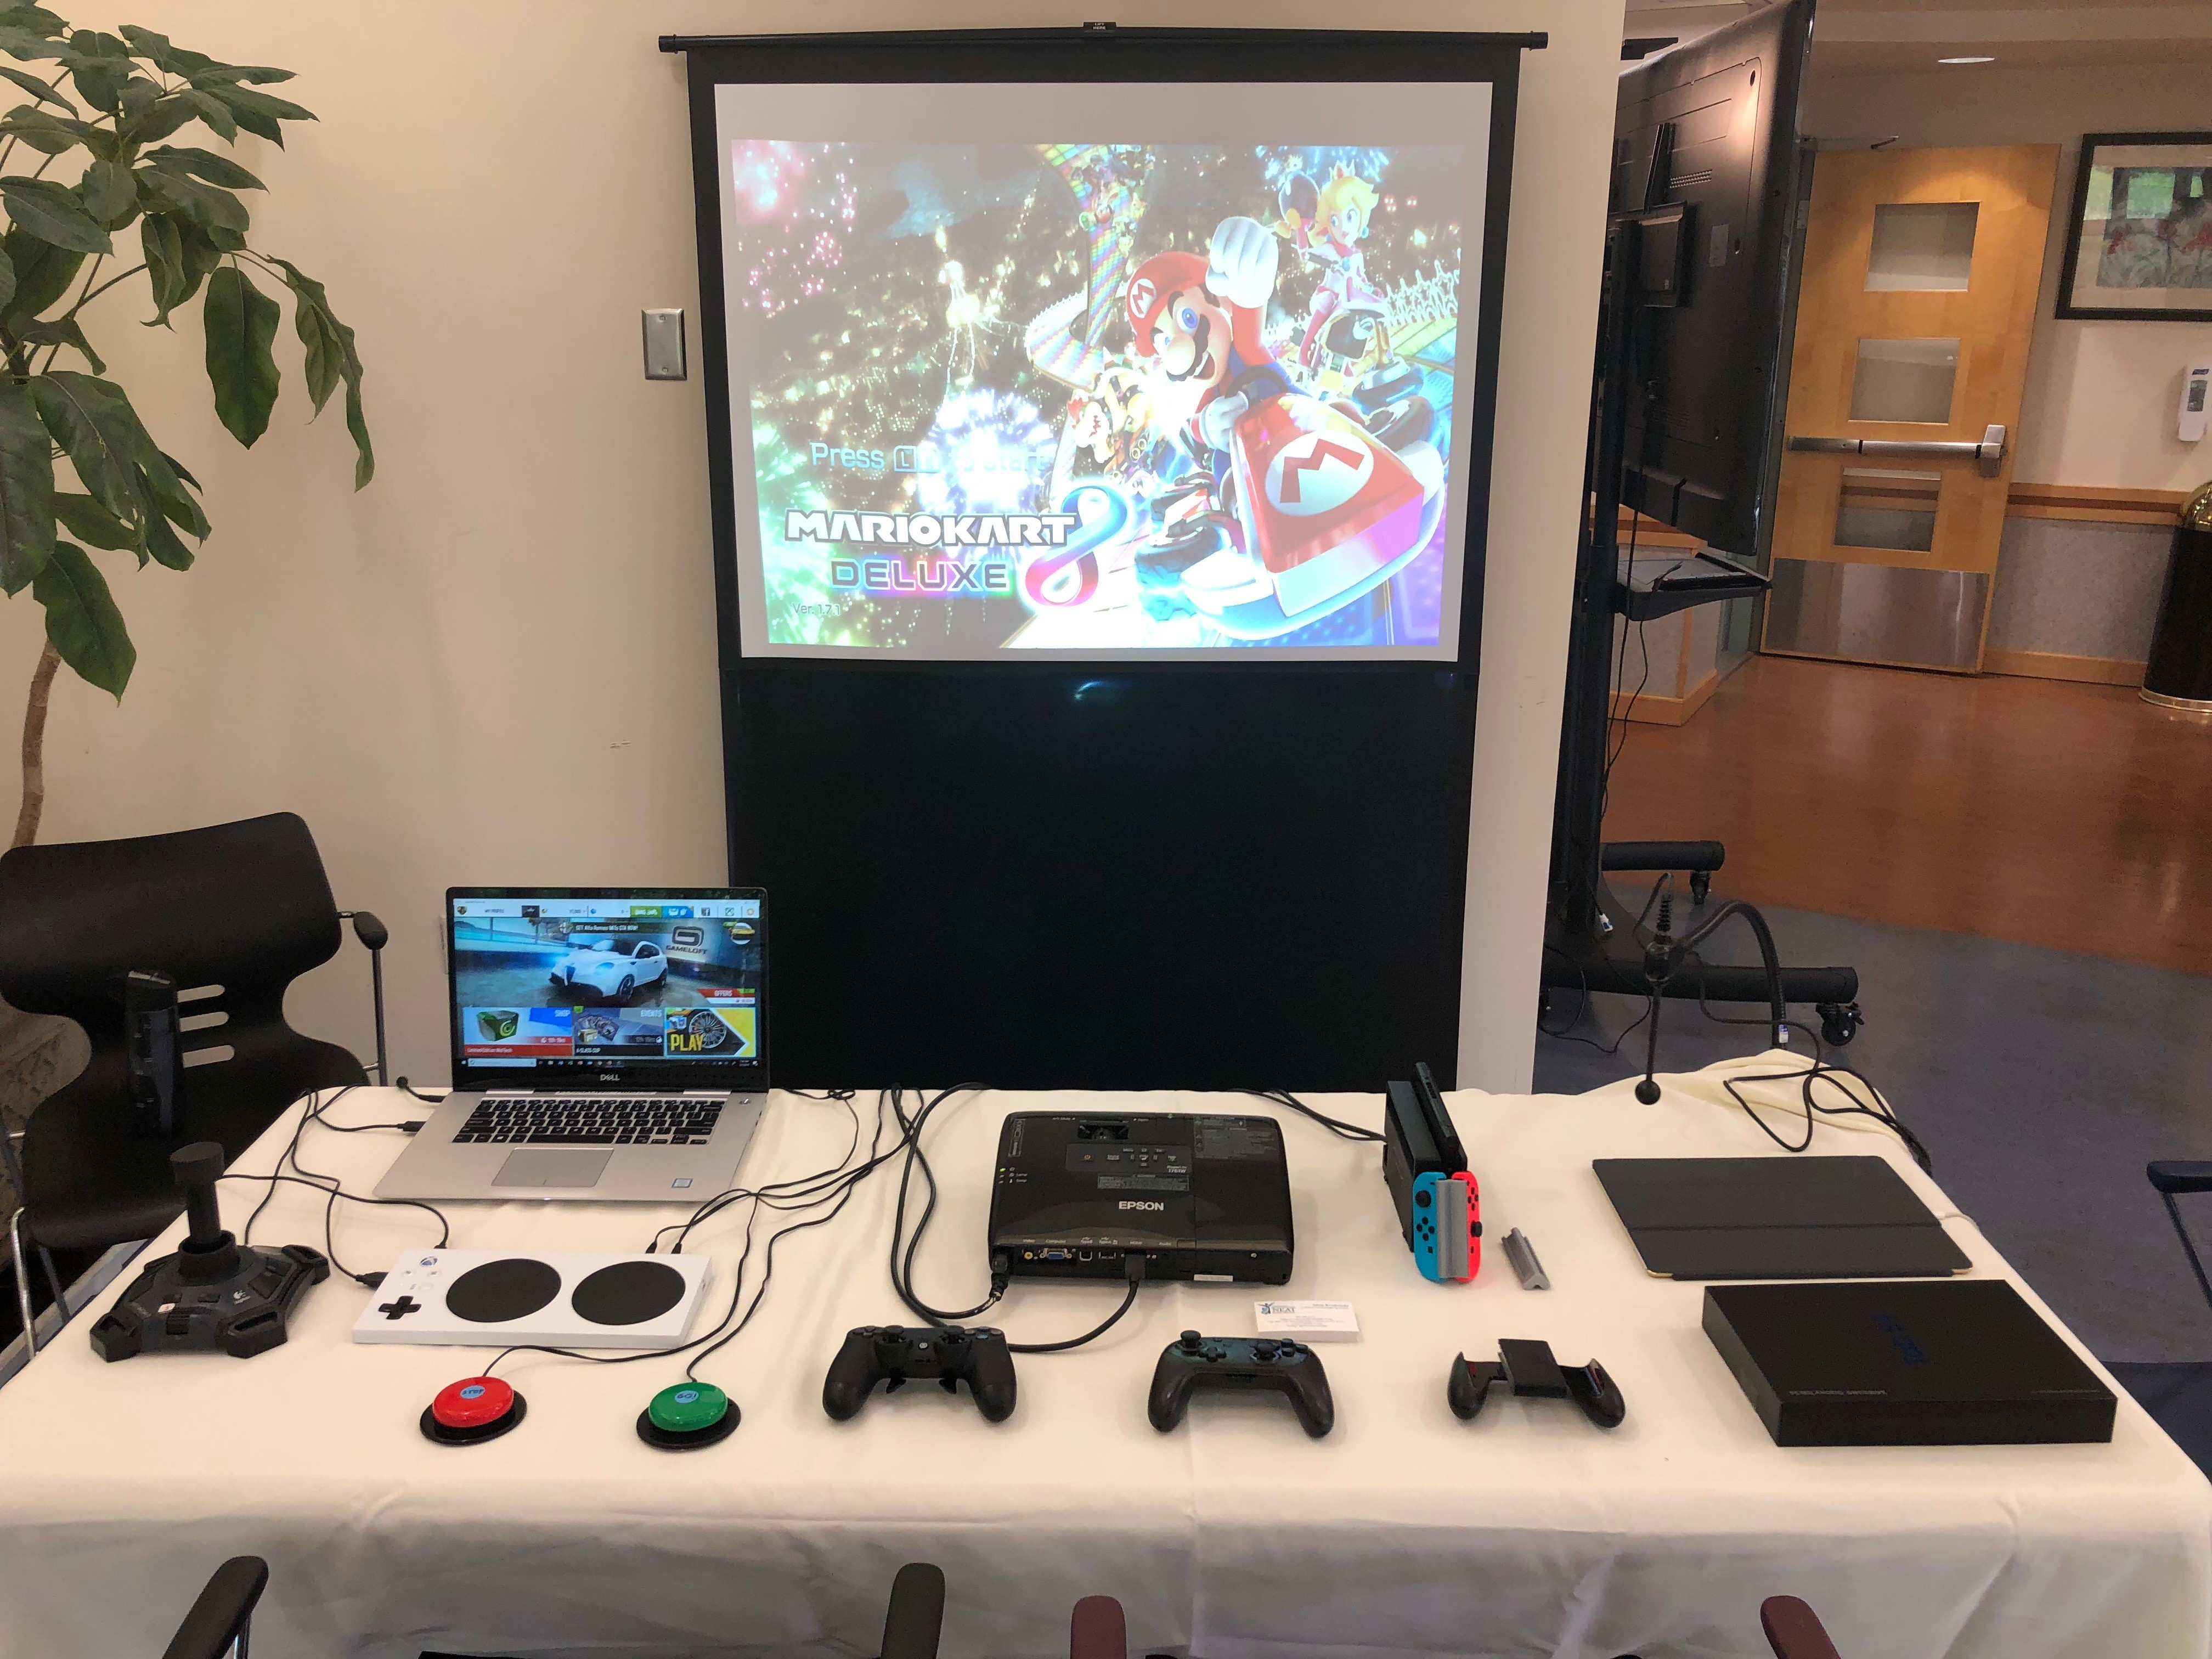 Gaming accessibility station with a variety of games, consoles, and accessories so everyone can play!